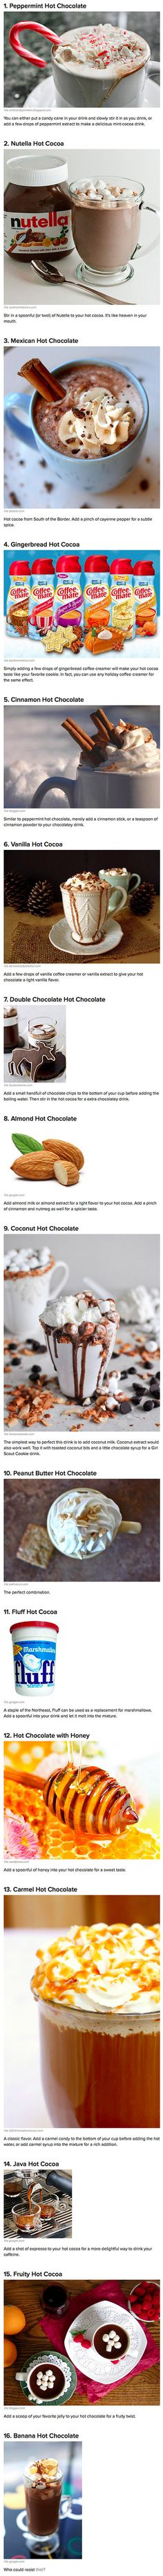 16 ways to enhance your instant hot cocoa. For a delicious holiday twist.